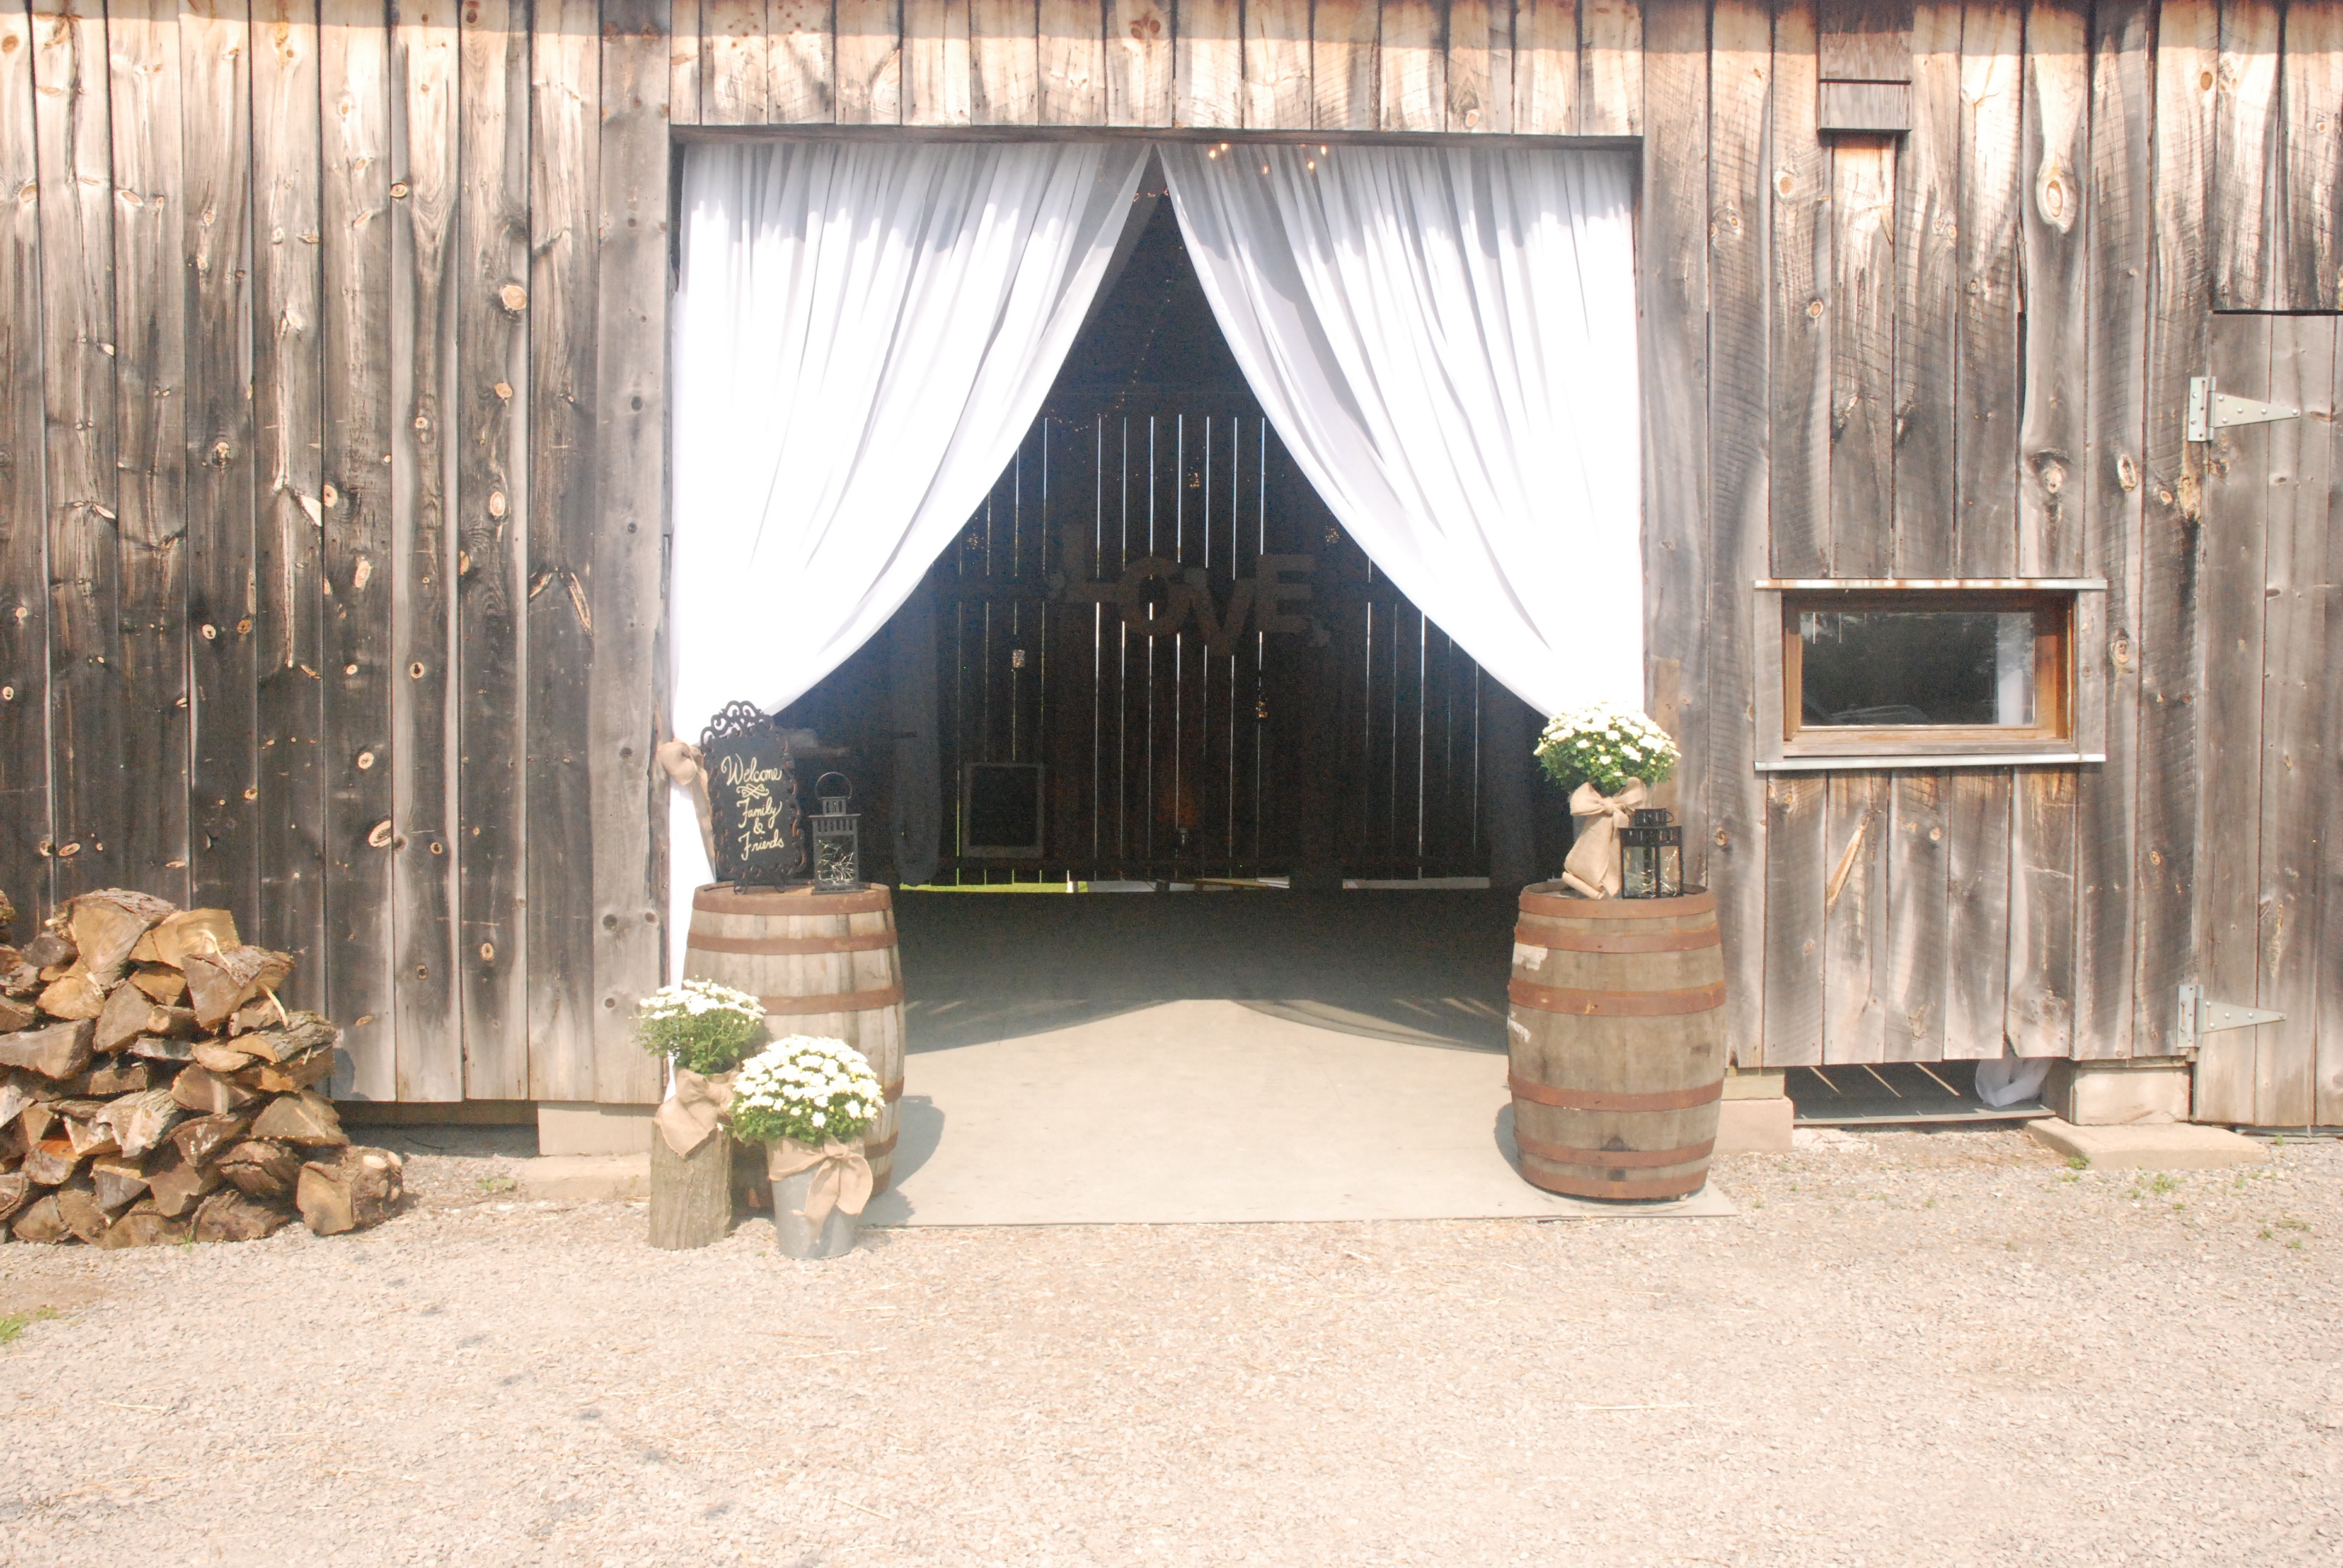 Barn Entrance Draping with Whiskey Barrels